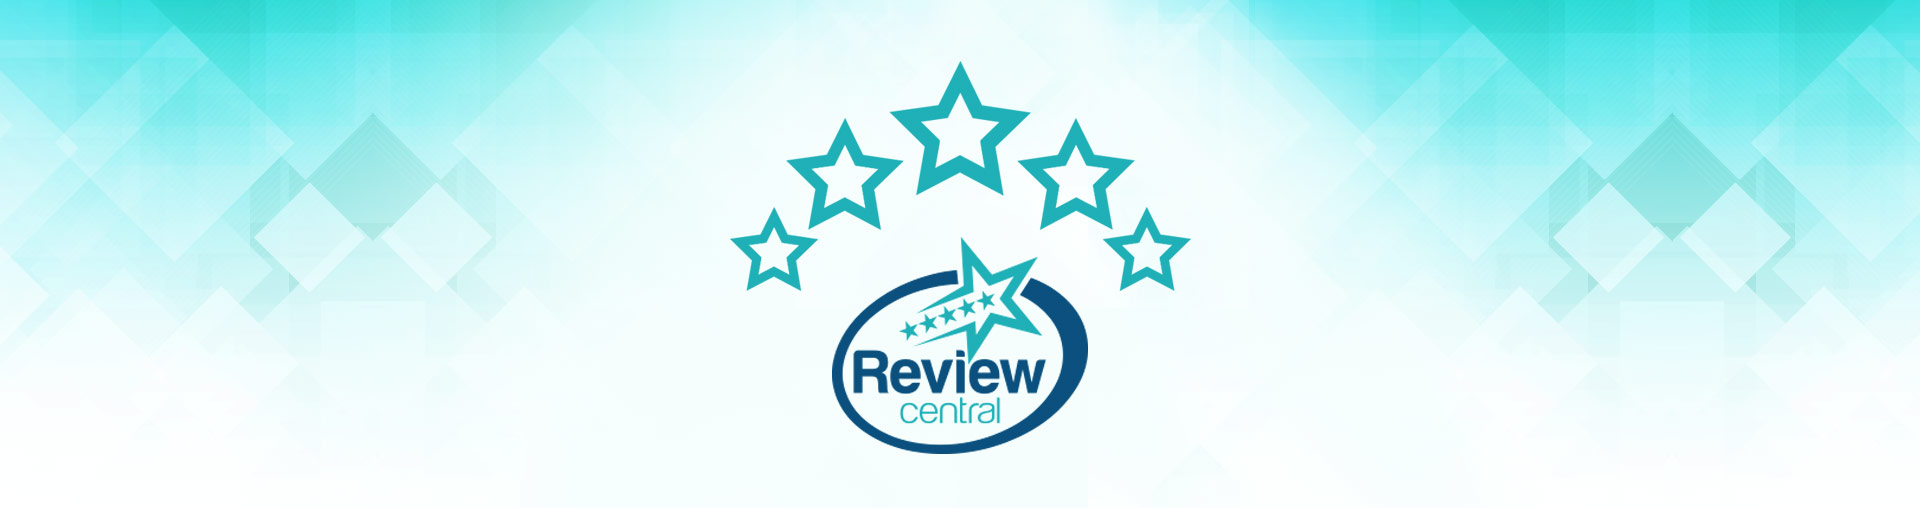 Review Central: Review System for Your Site